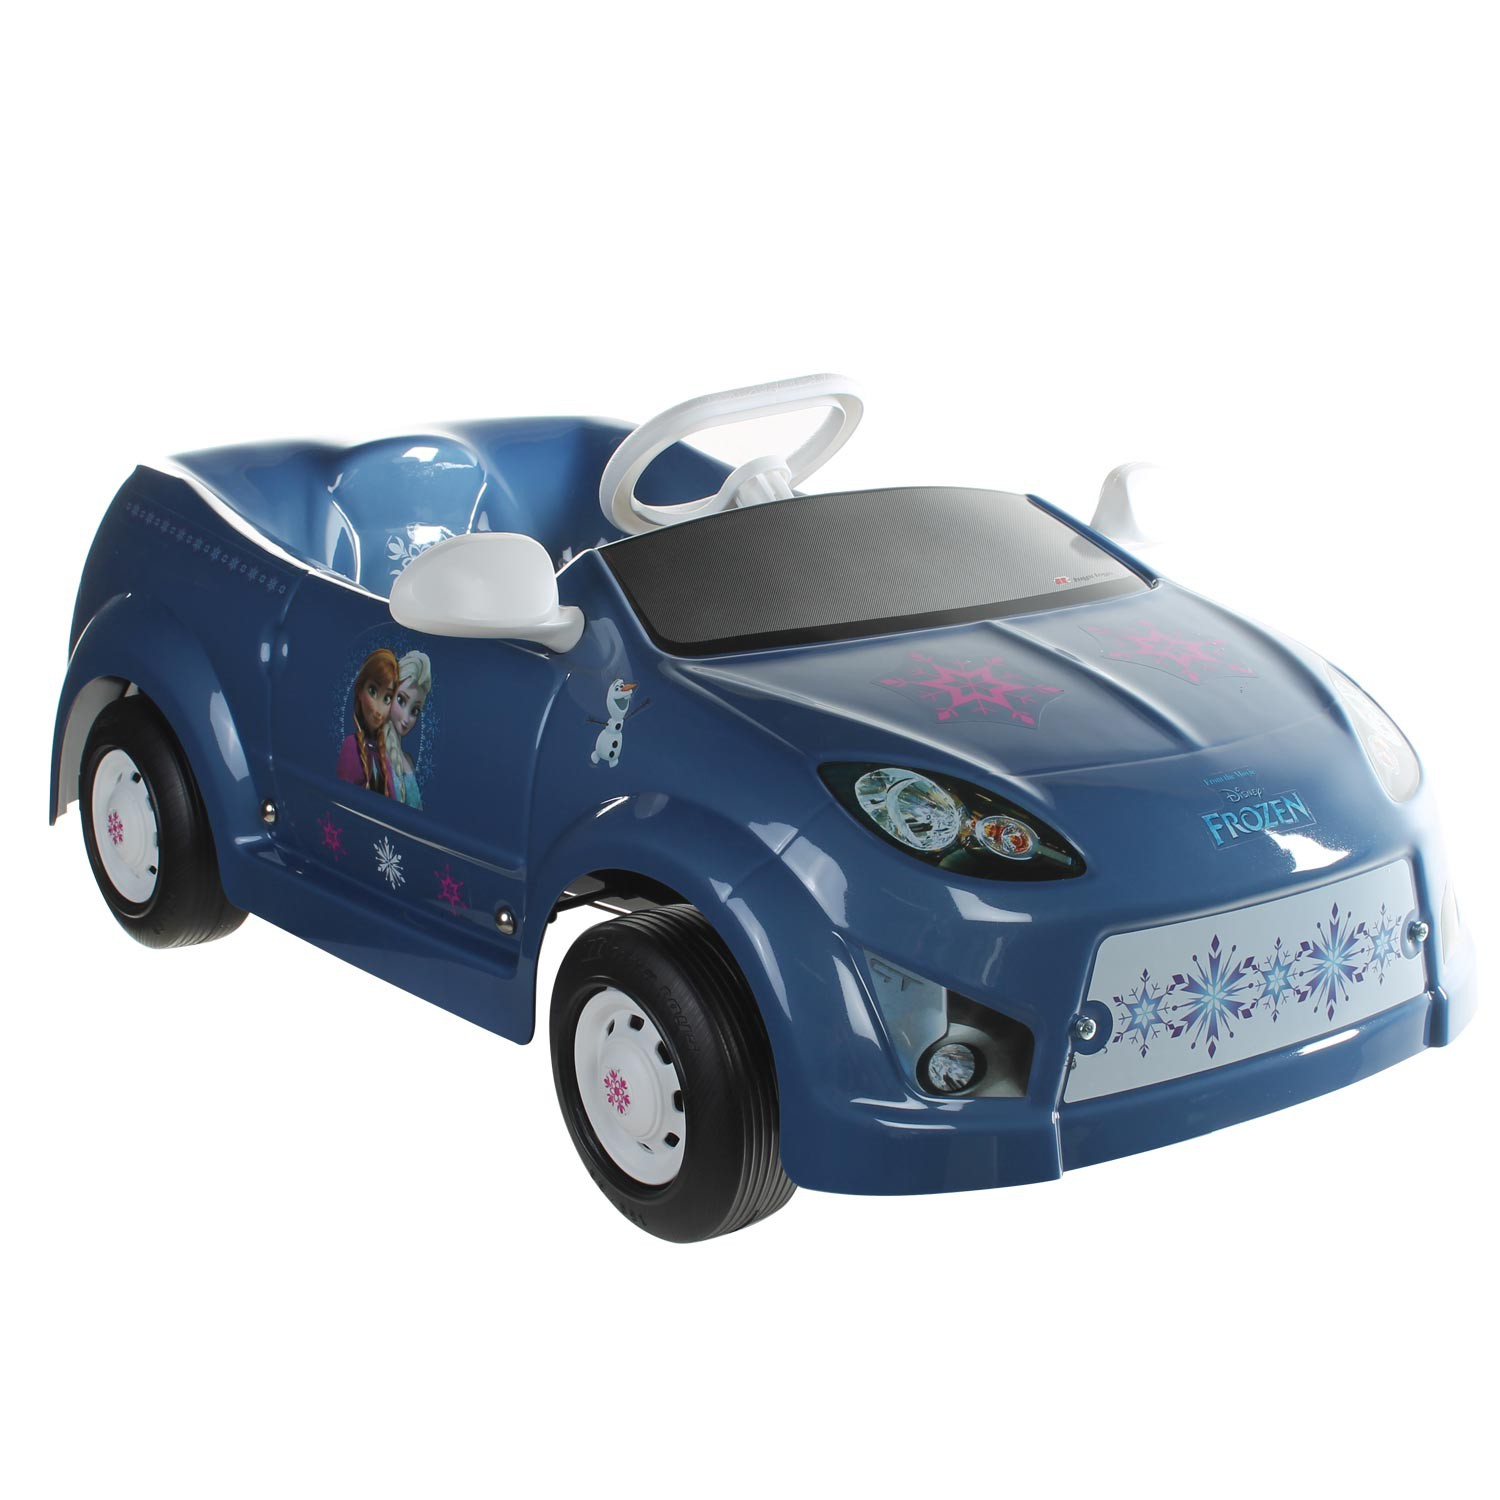 tretauto disney cars oder frozen kinderfahrzeug sport. Black Bedroom Furniture Sets. Home Design Ideas